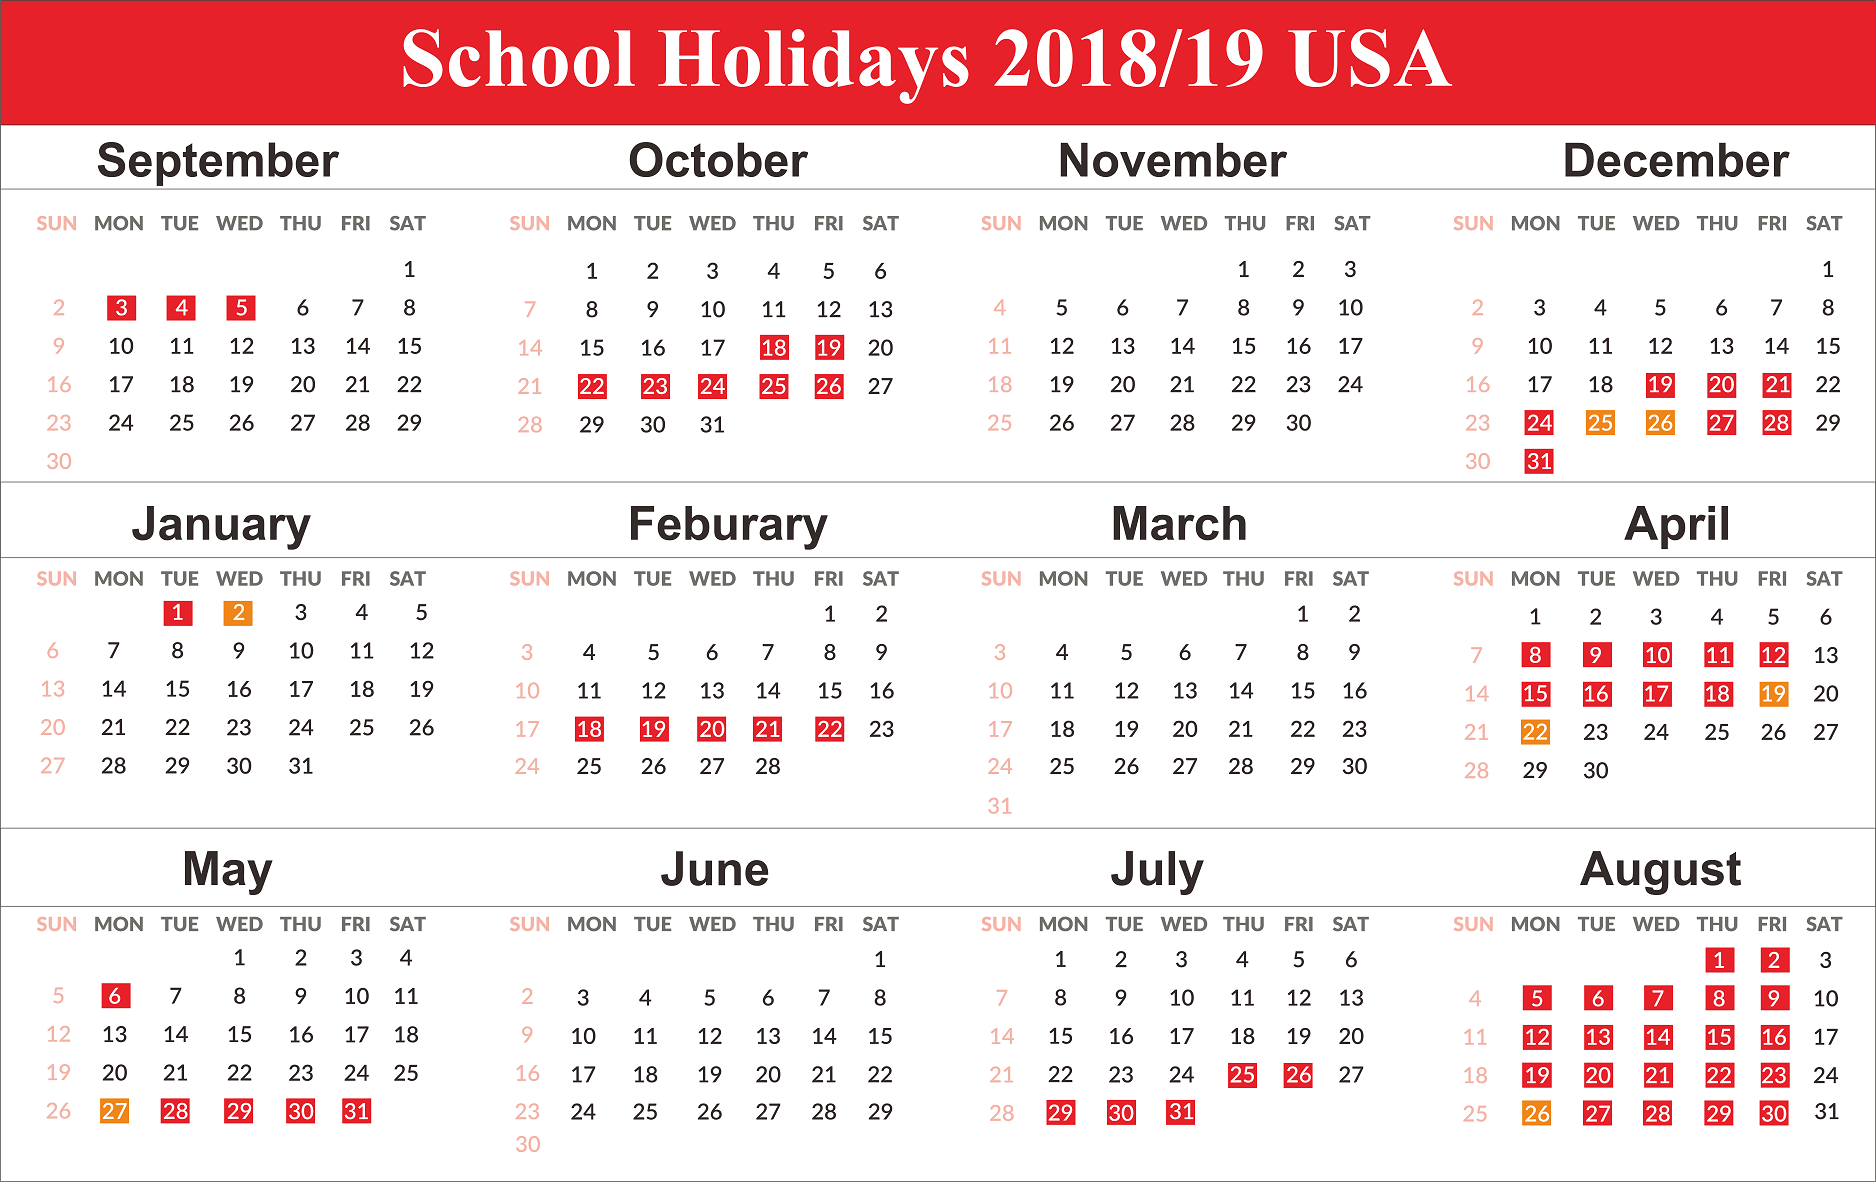 Us Holidays 2020 | School Calendar, School Holiday Calendar with Uri Academic Calendar Holiday